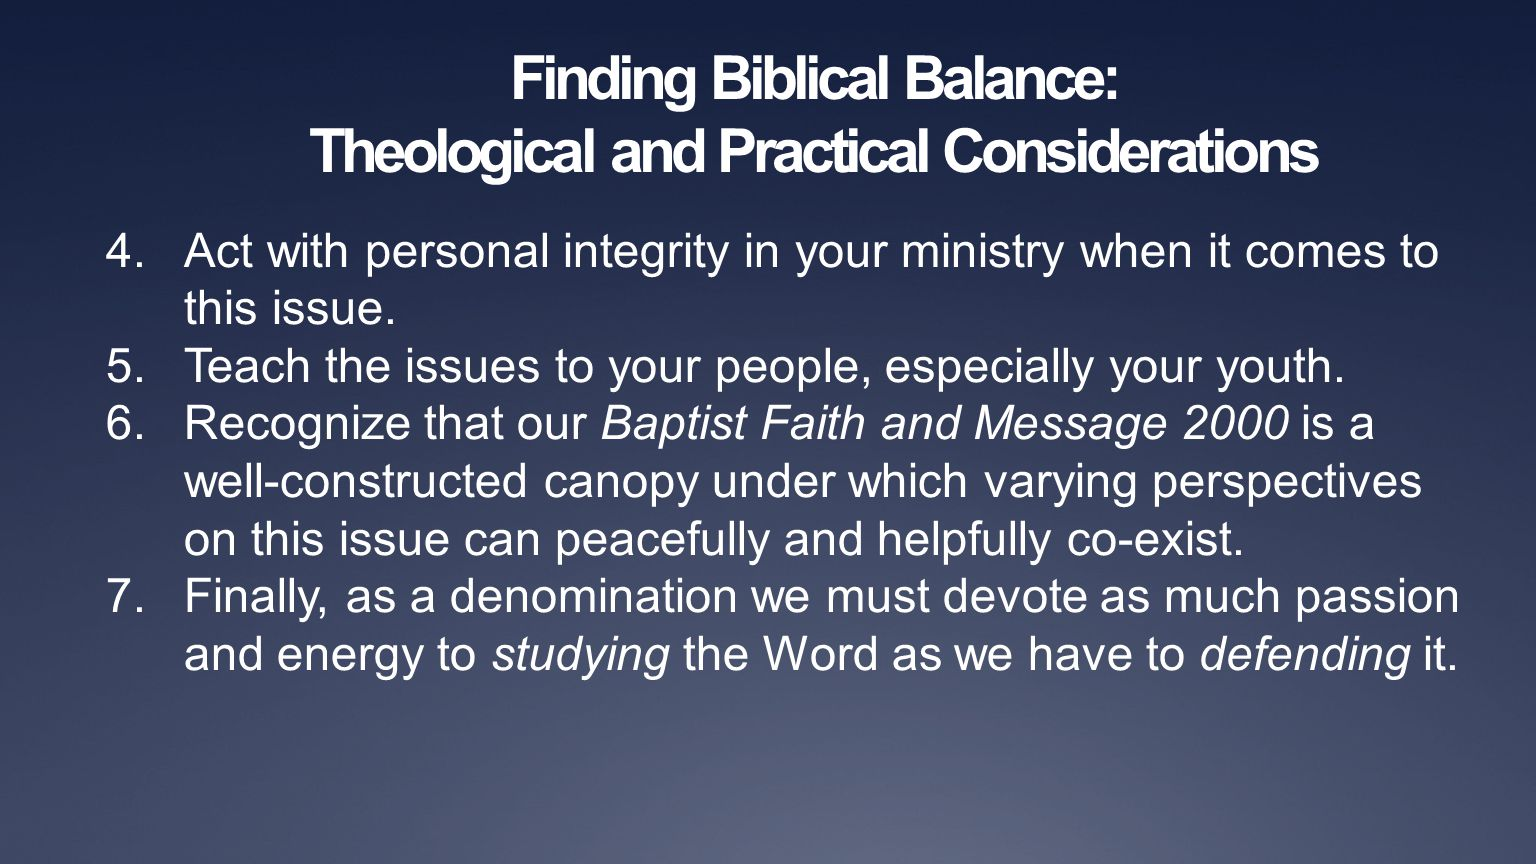 Finding Biblical Balance: Theological and Practical Considerations 4.Act with personal integrity in your ministry when it comes to this issue.